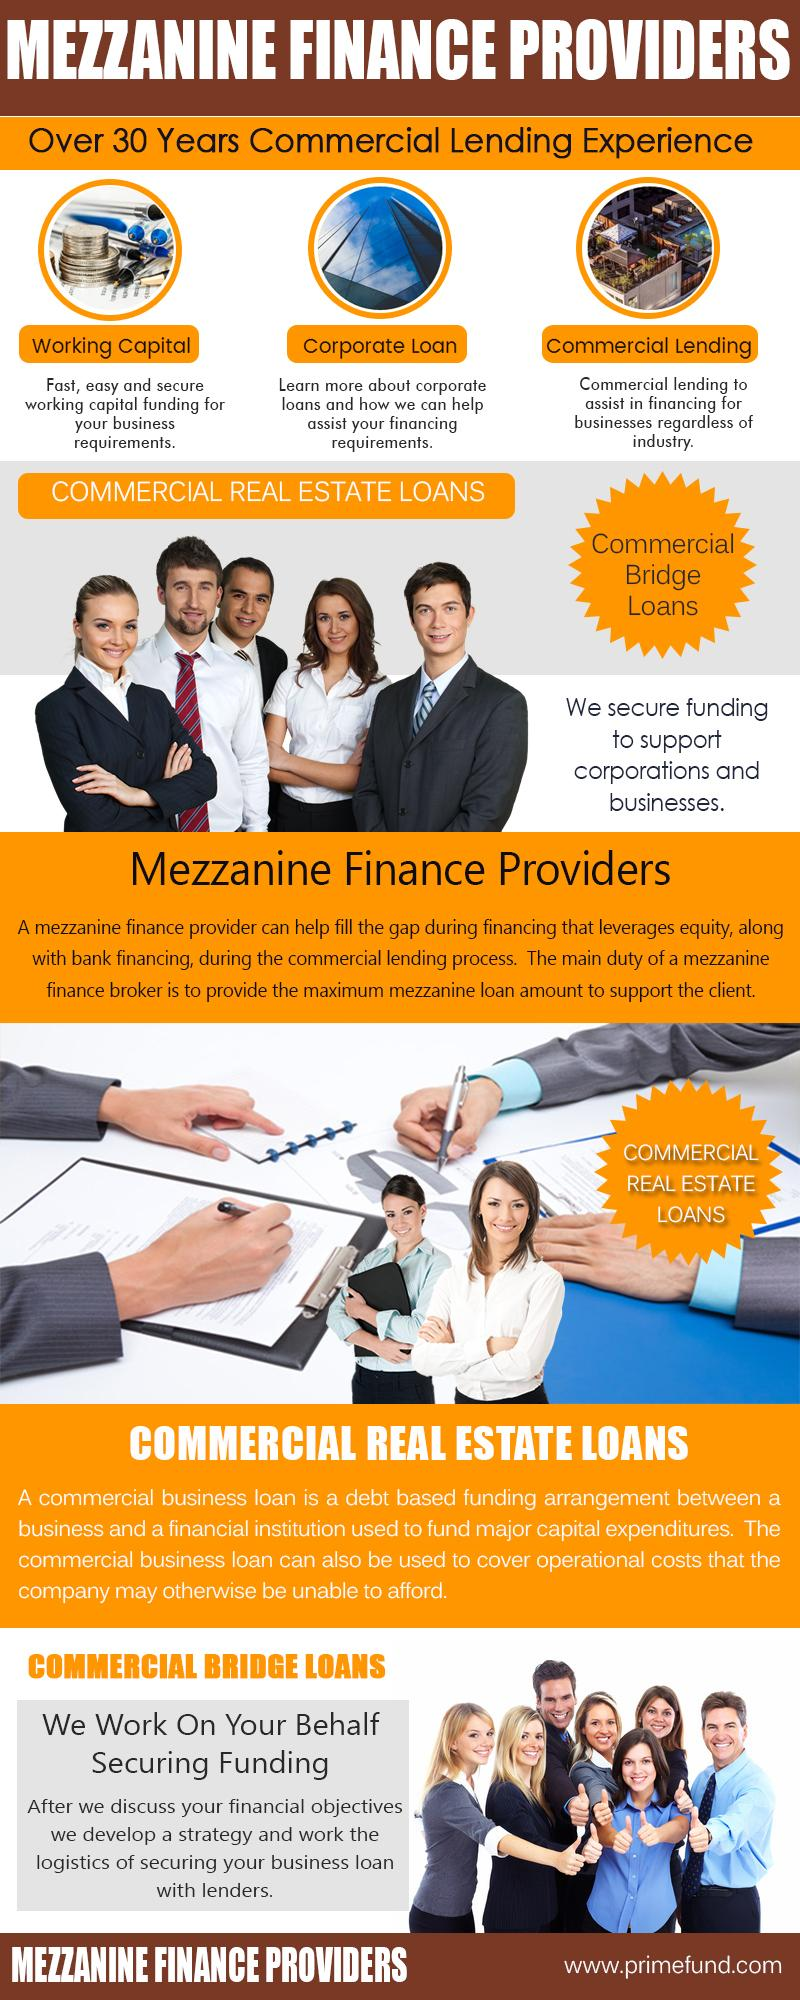 Mezzanine Finance Providers